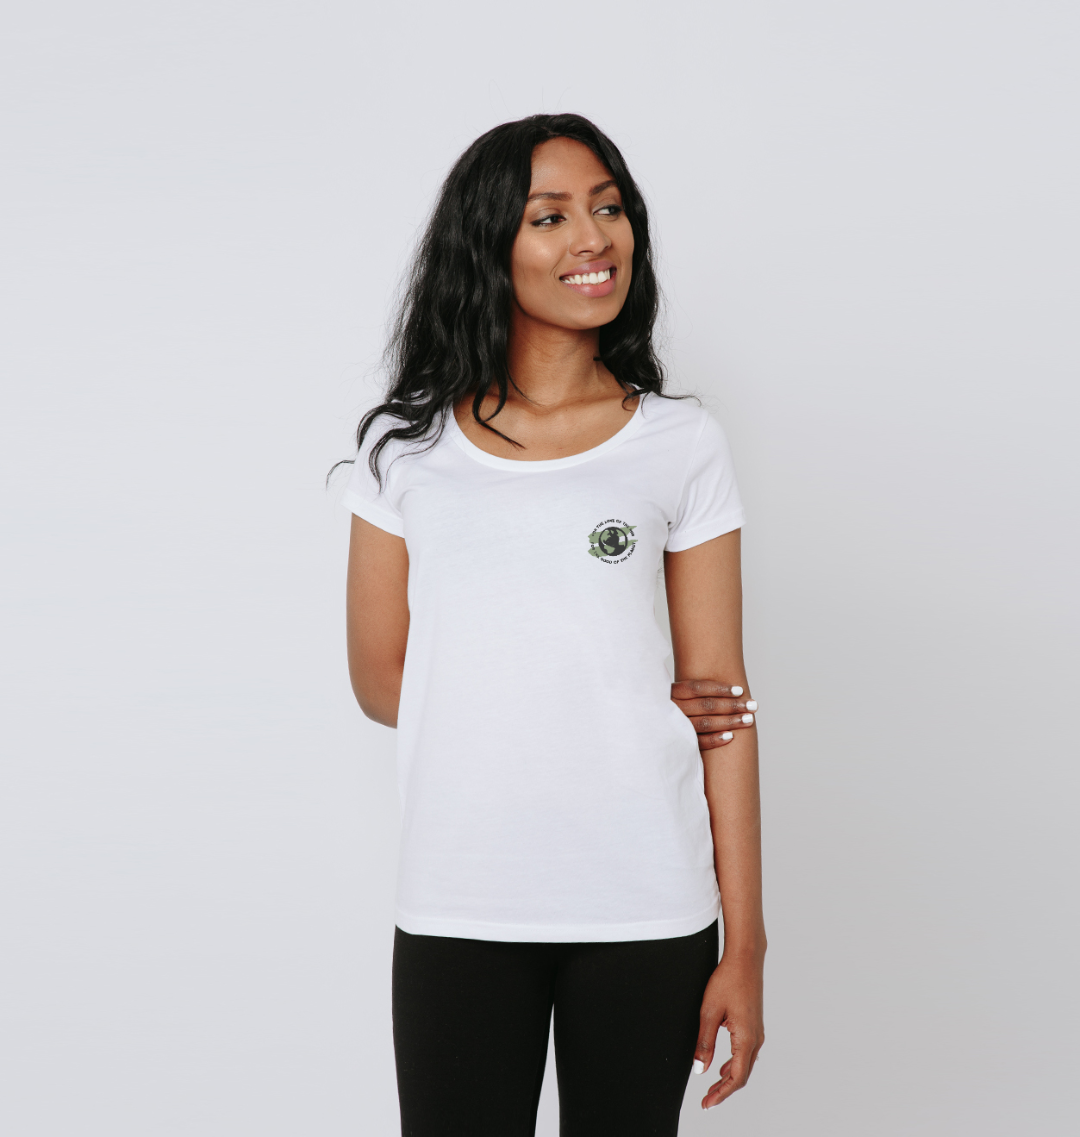 Earth Scoop Tee in Terrain - Women's